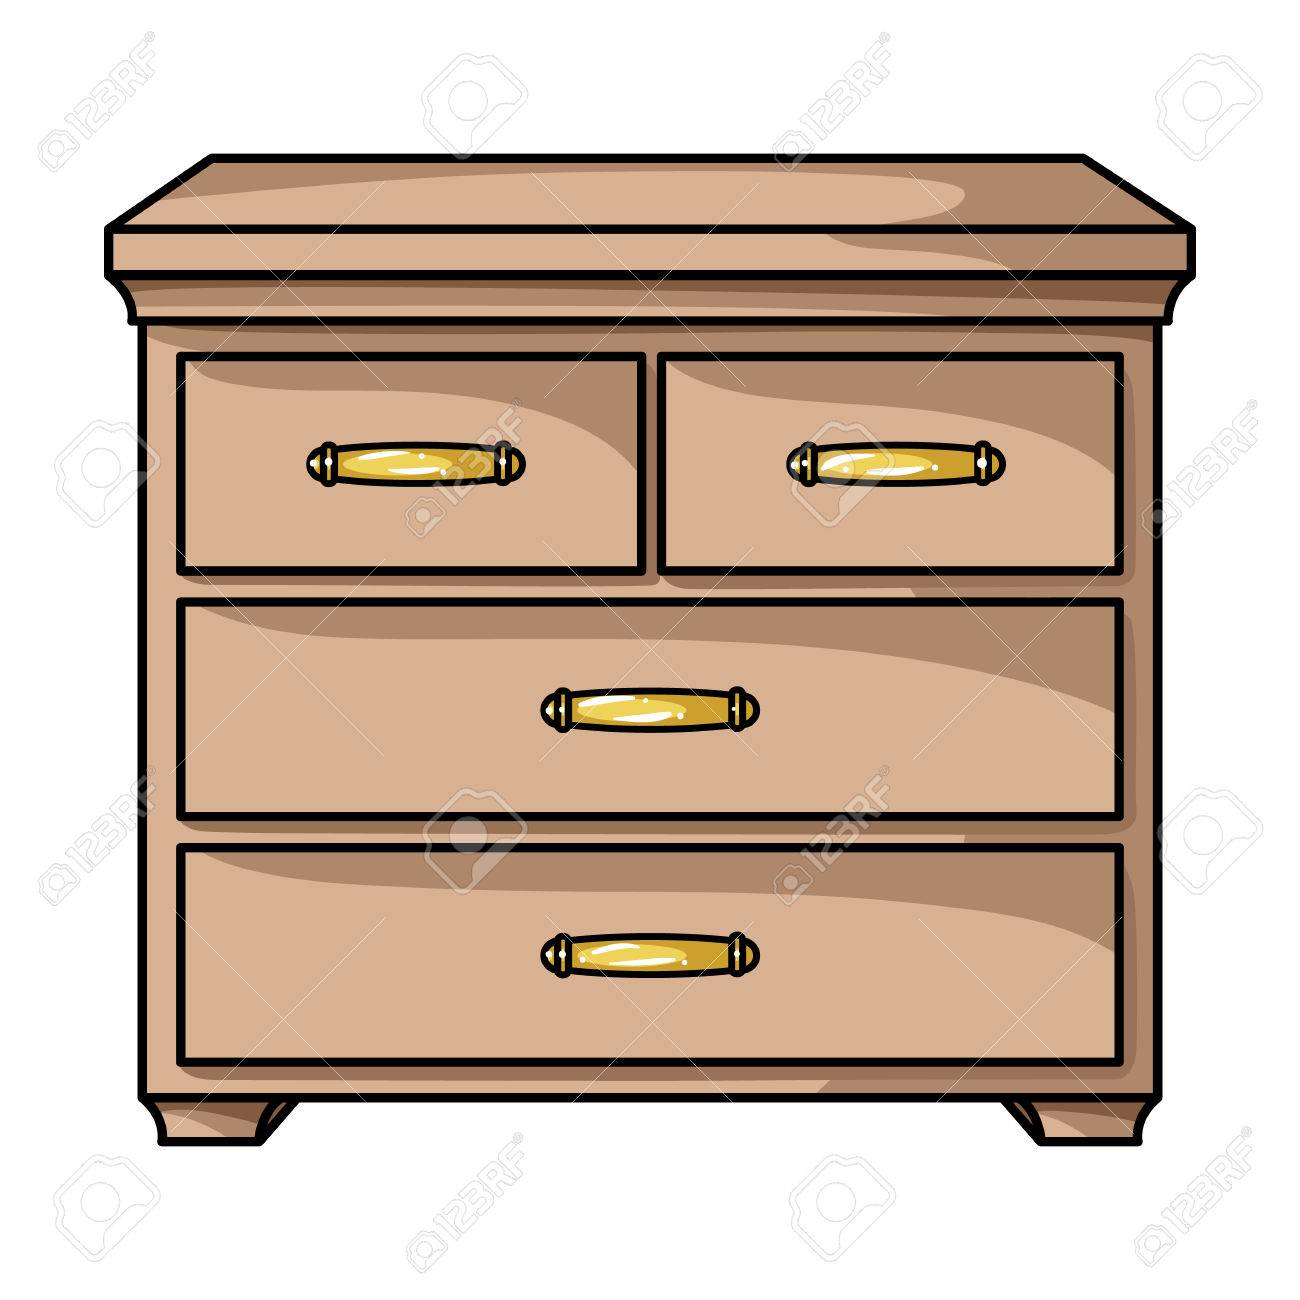 Vector - Wooden cabinet with drawers icon in cartoon style isolated on white background. Furniture and home interior symbol vector illustration.  sc 1 st  123RF.com & Wooden Cabinet With Drawers Icon In Cartoon Style Isolated On ...